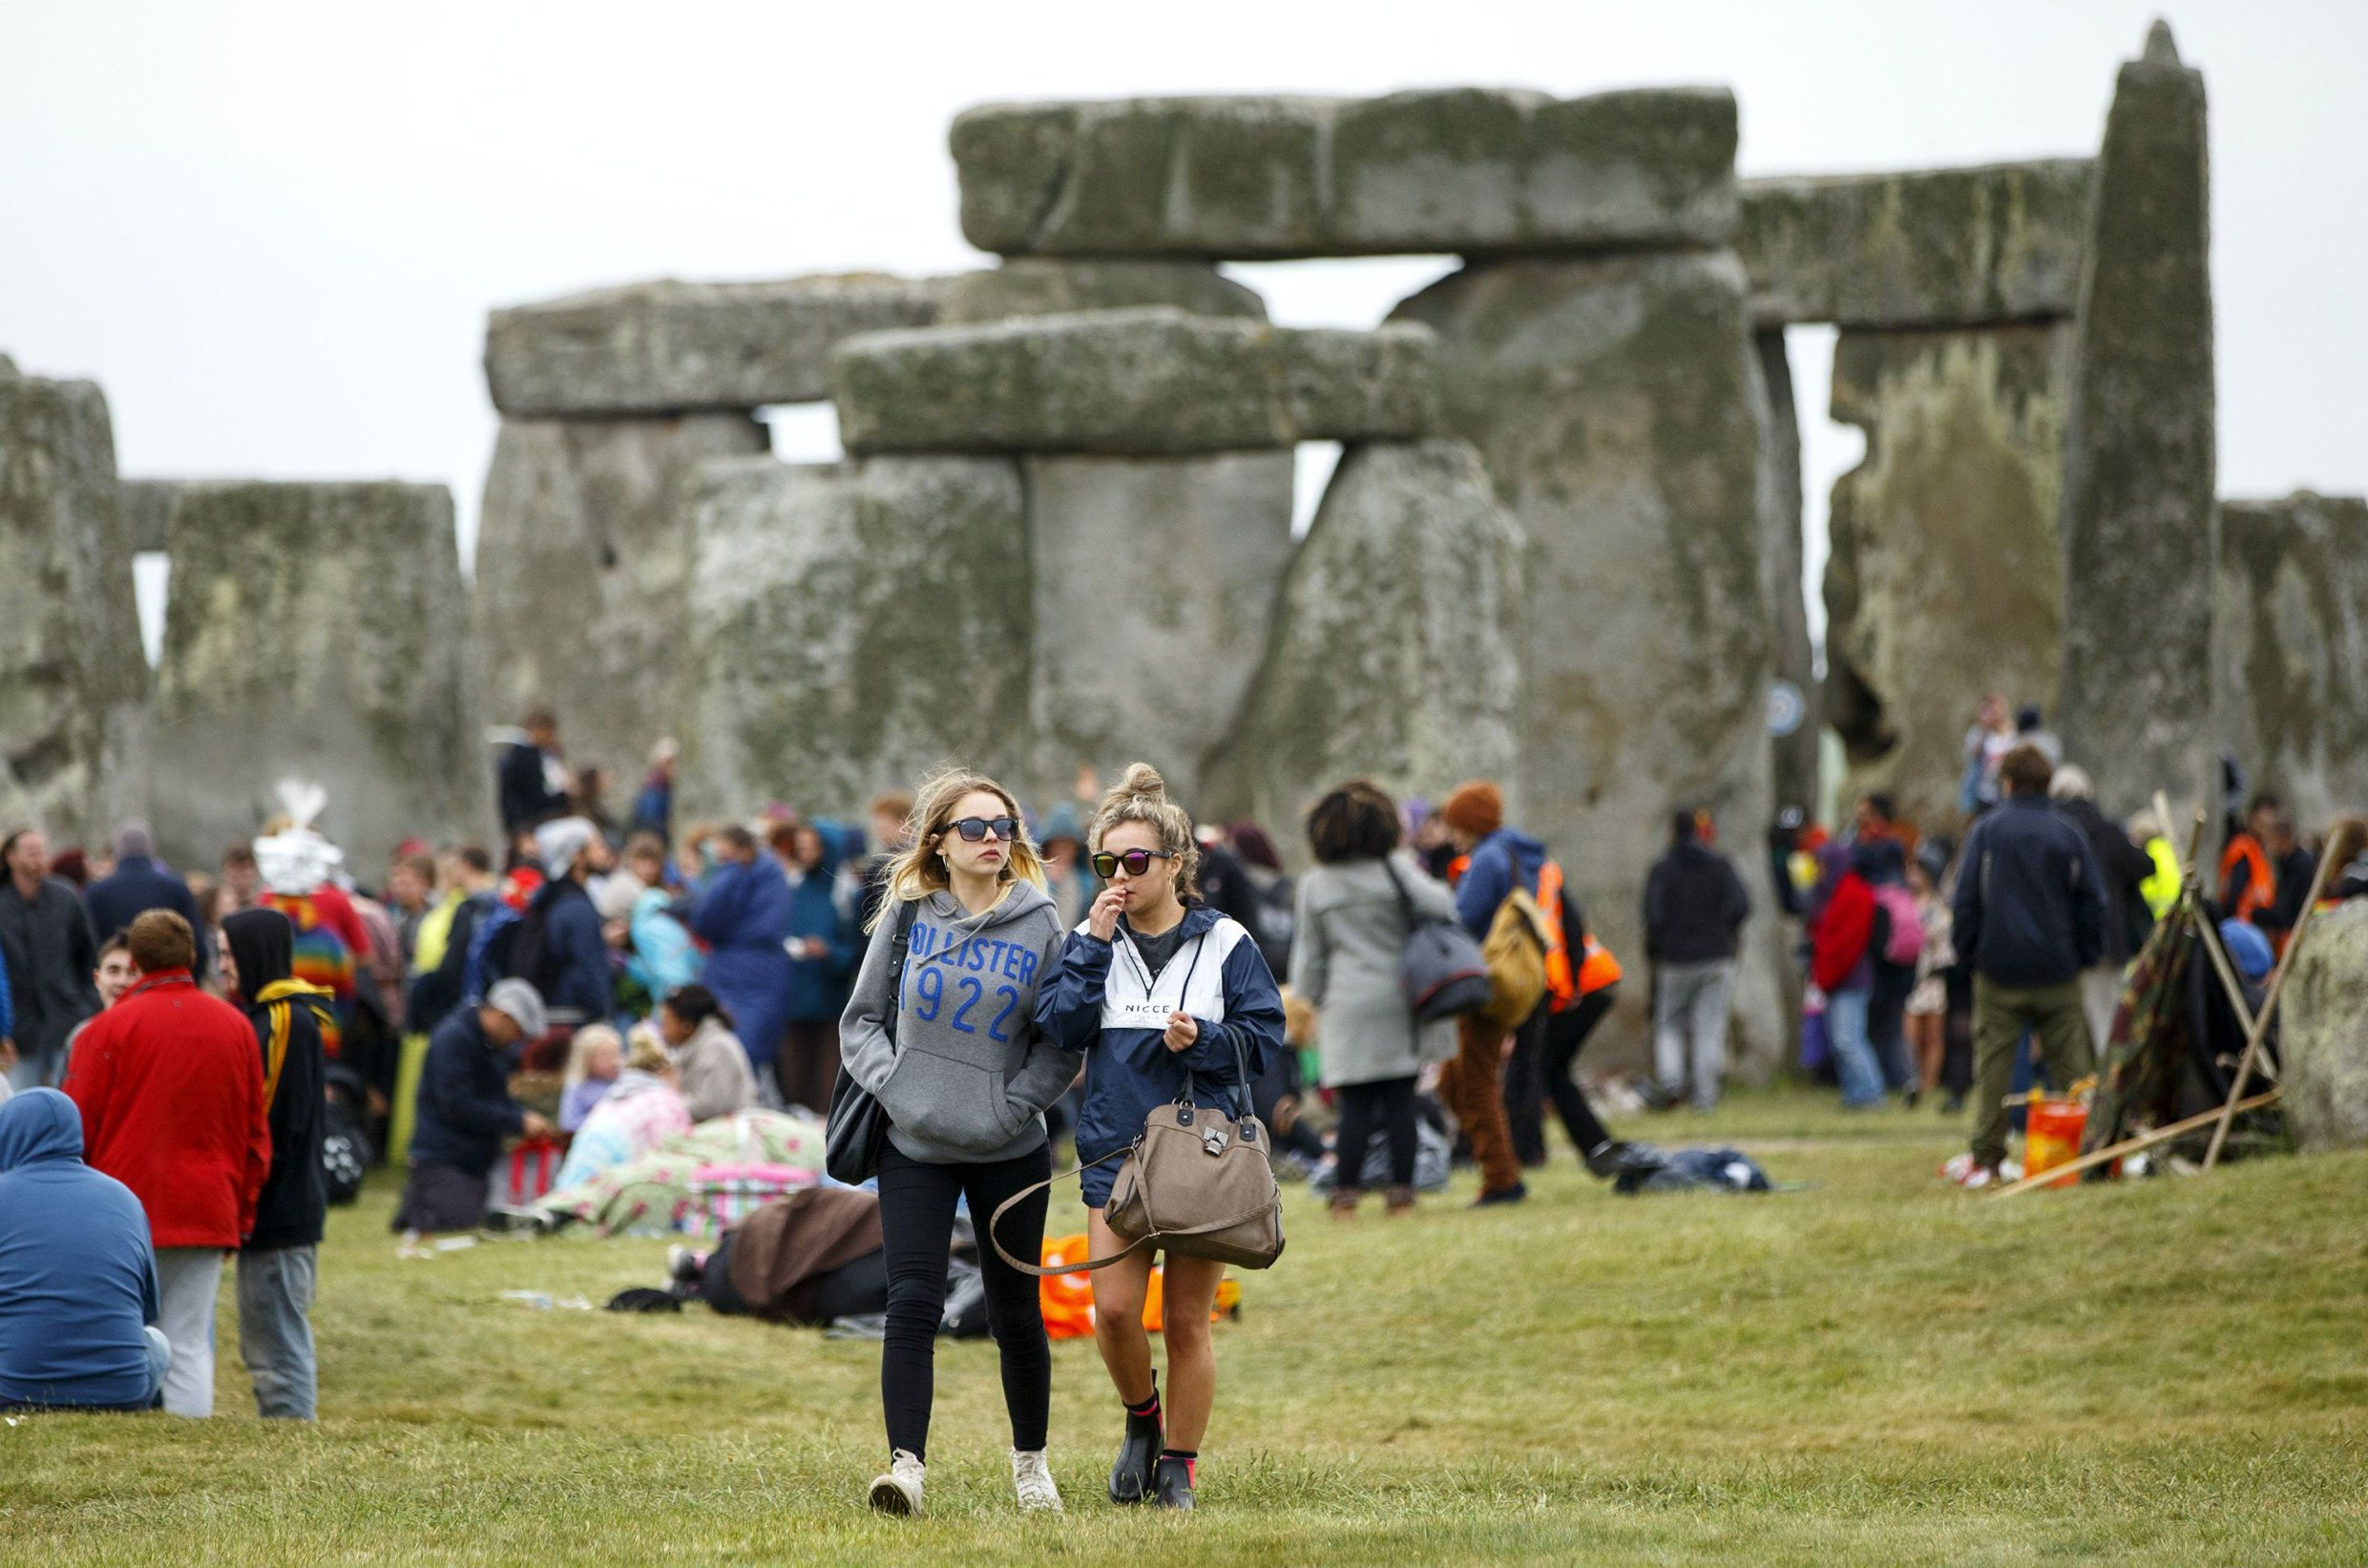 Summer solstice 2016: When is the longest day and why do we celebrate it?